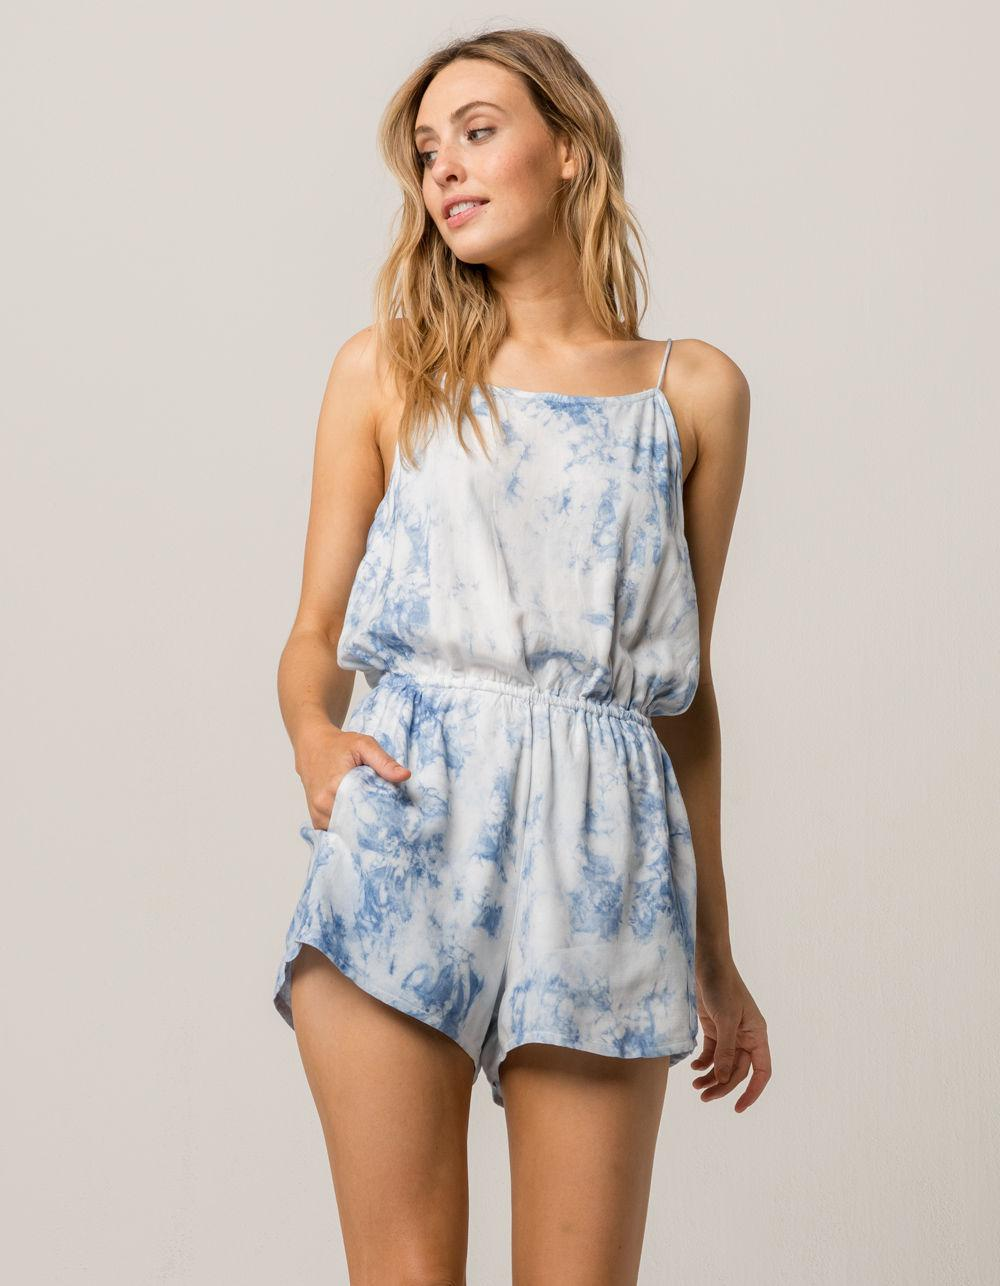 d9dc5bf1d2 Lyst - RVCA Milly Womens Romper in Blue